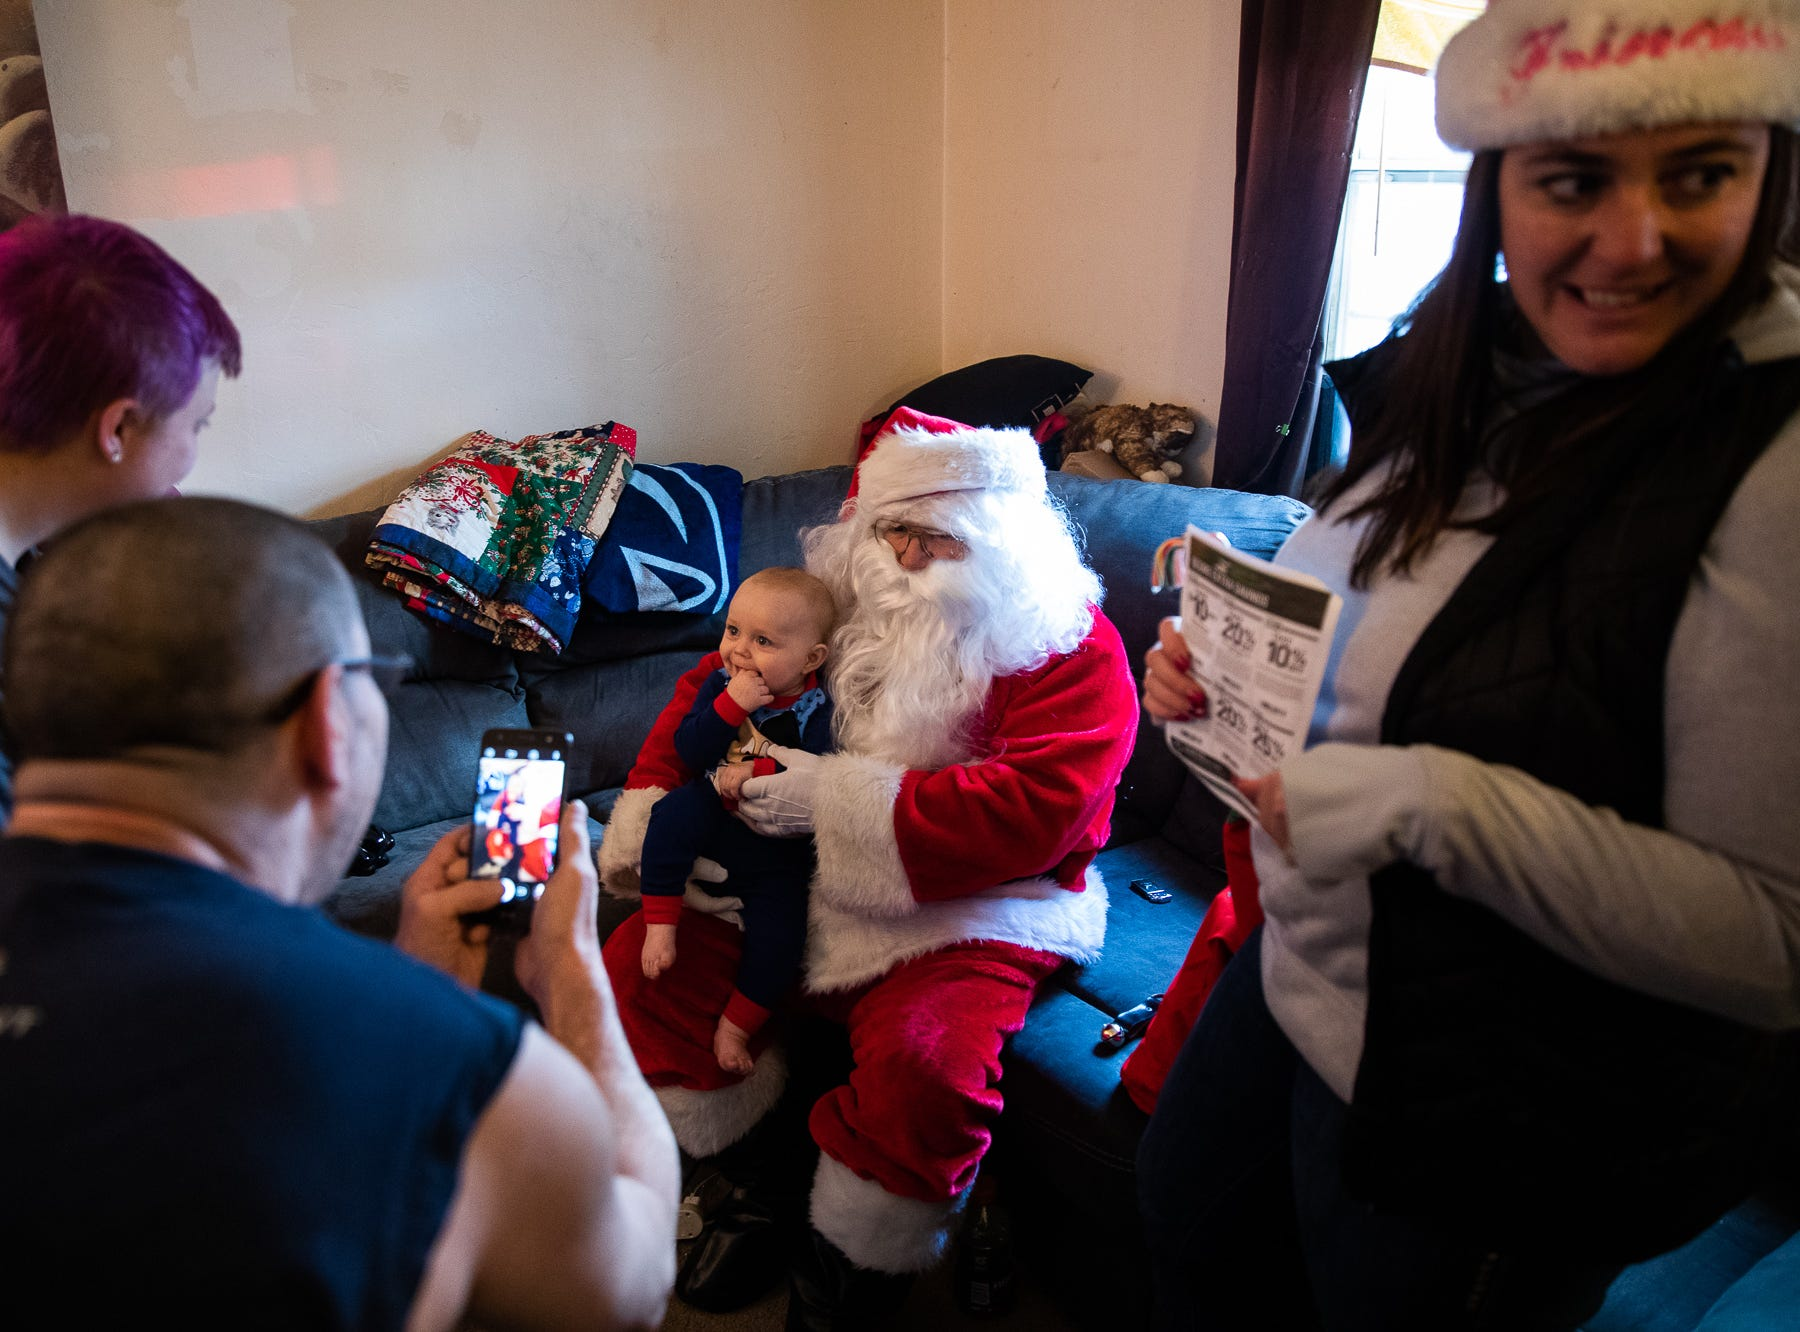 Family members take photos as 7-month-old Heath sits on the lap of Santa, played by firefighter Wayne Reid, during the S.A.V.E.S Project Santa, Saturday, Dec. 22, 2018, in McSherrystown Borough. The S.A.V.E.S Project Santa donated food, toys, and clothing to 12 local families in need.